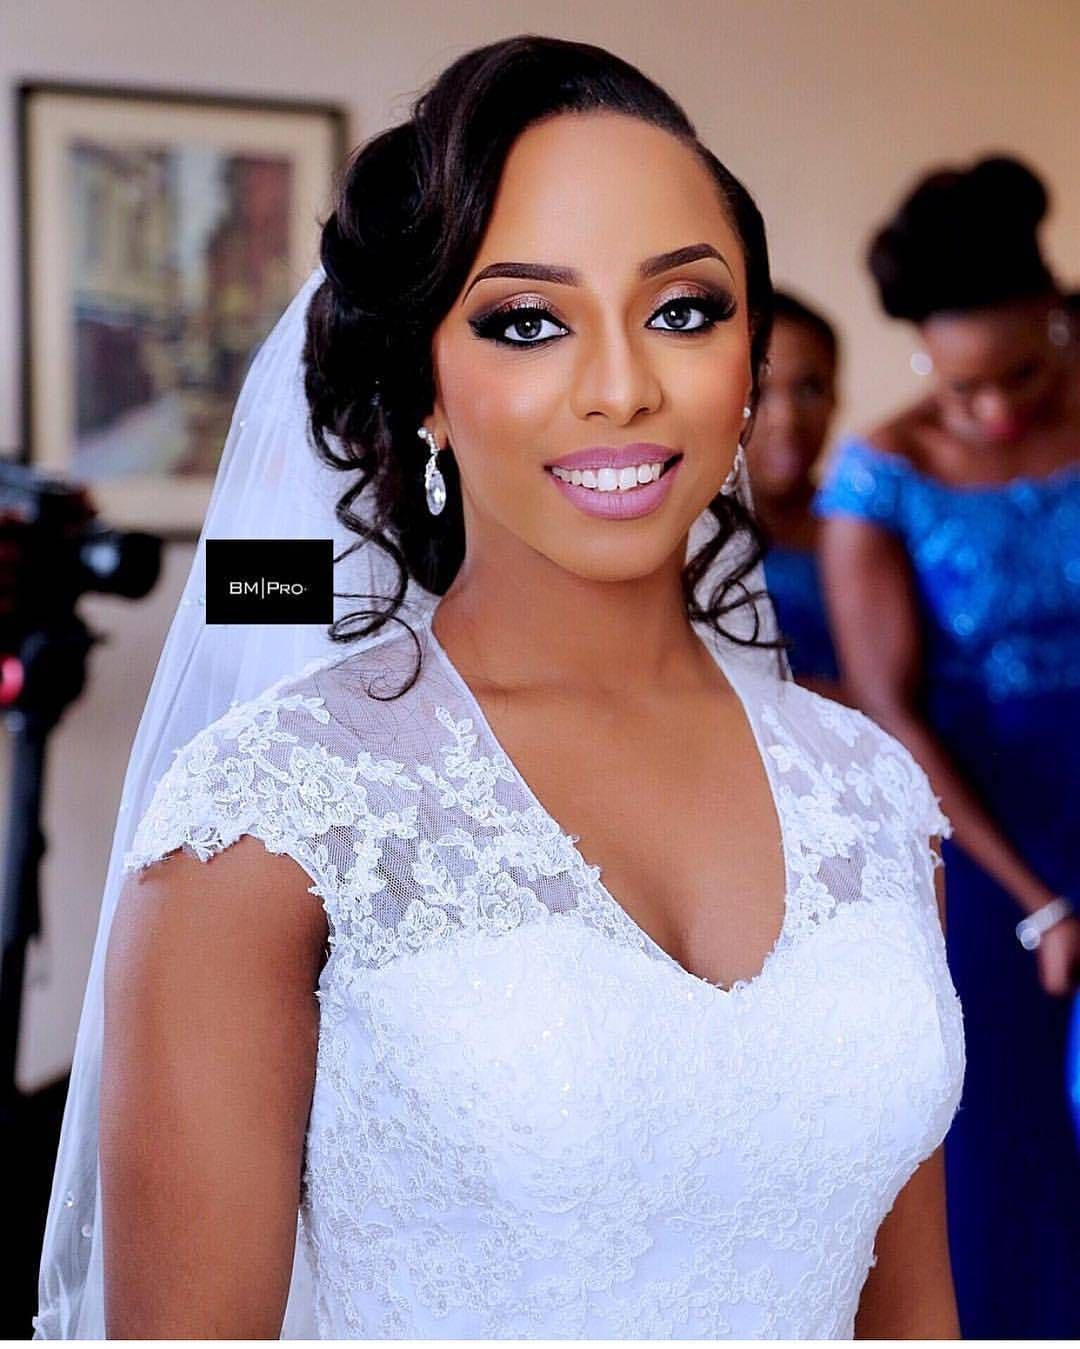 Wedding Hairstyle And Makeup: Such A Beauty! Makeup By @banksbmpro #whitewedding #dress